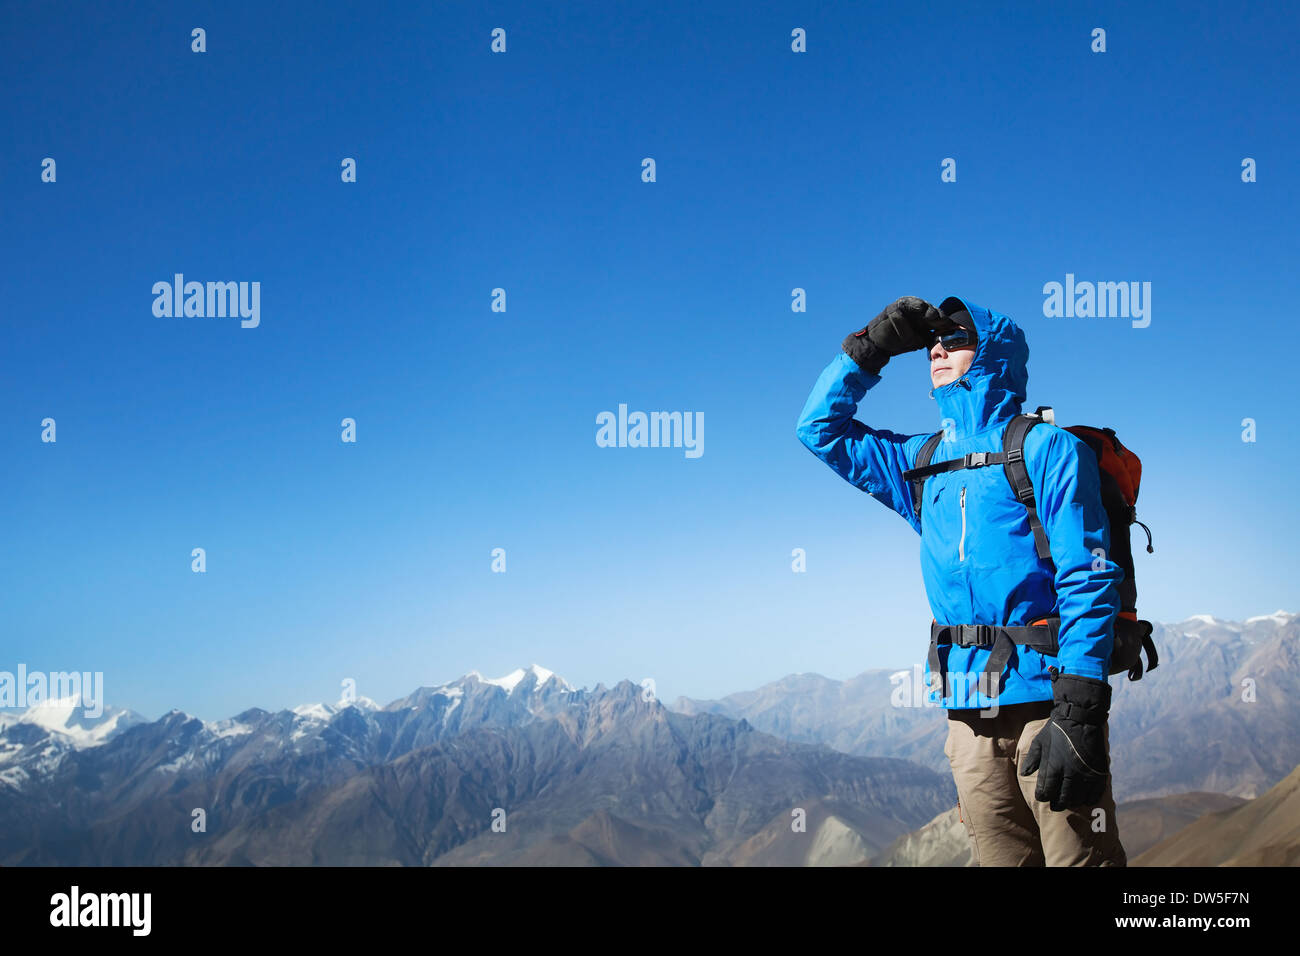 backpacker in the mountains - Stock Image